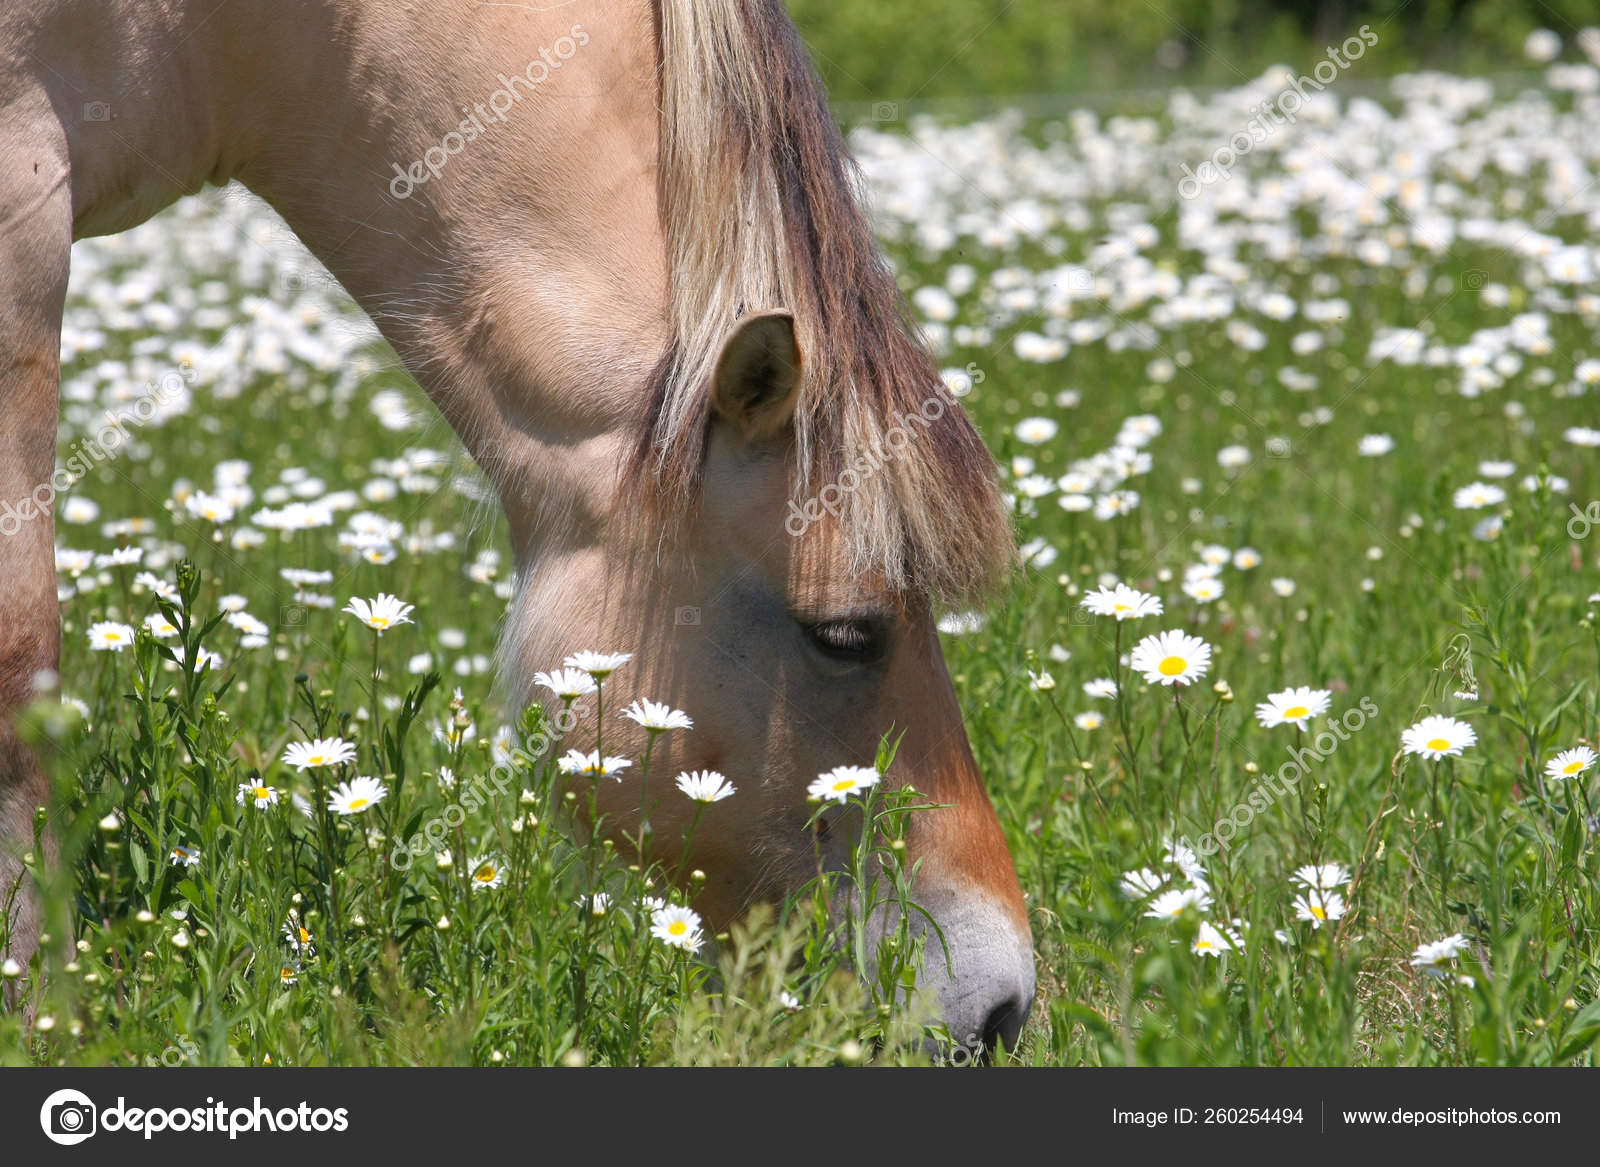 Norwegian Fjord Horse Feeding Field Eyed Daisy Flower Stock Photo C Yayimages 260254494